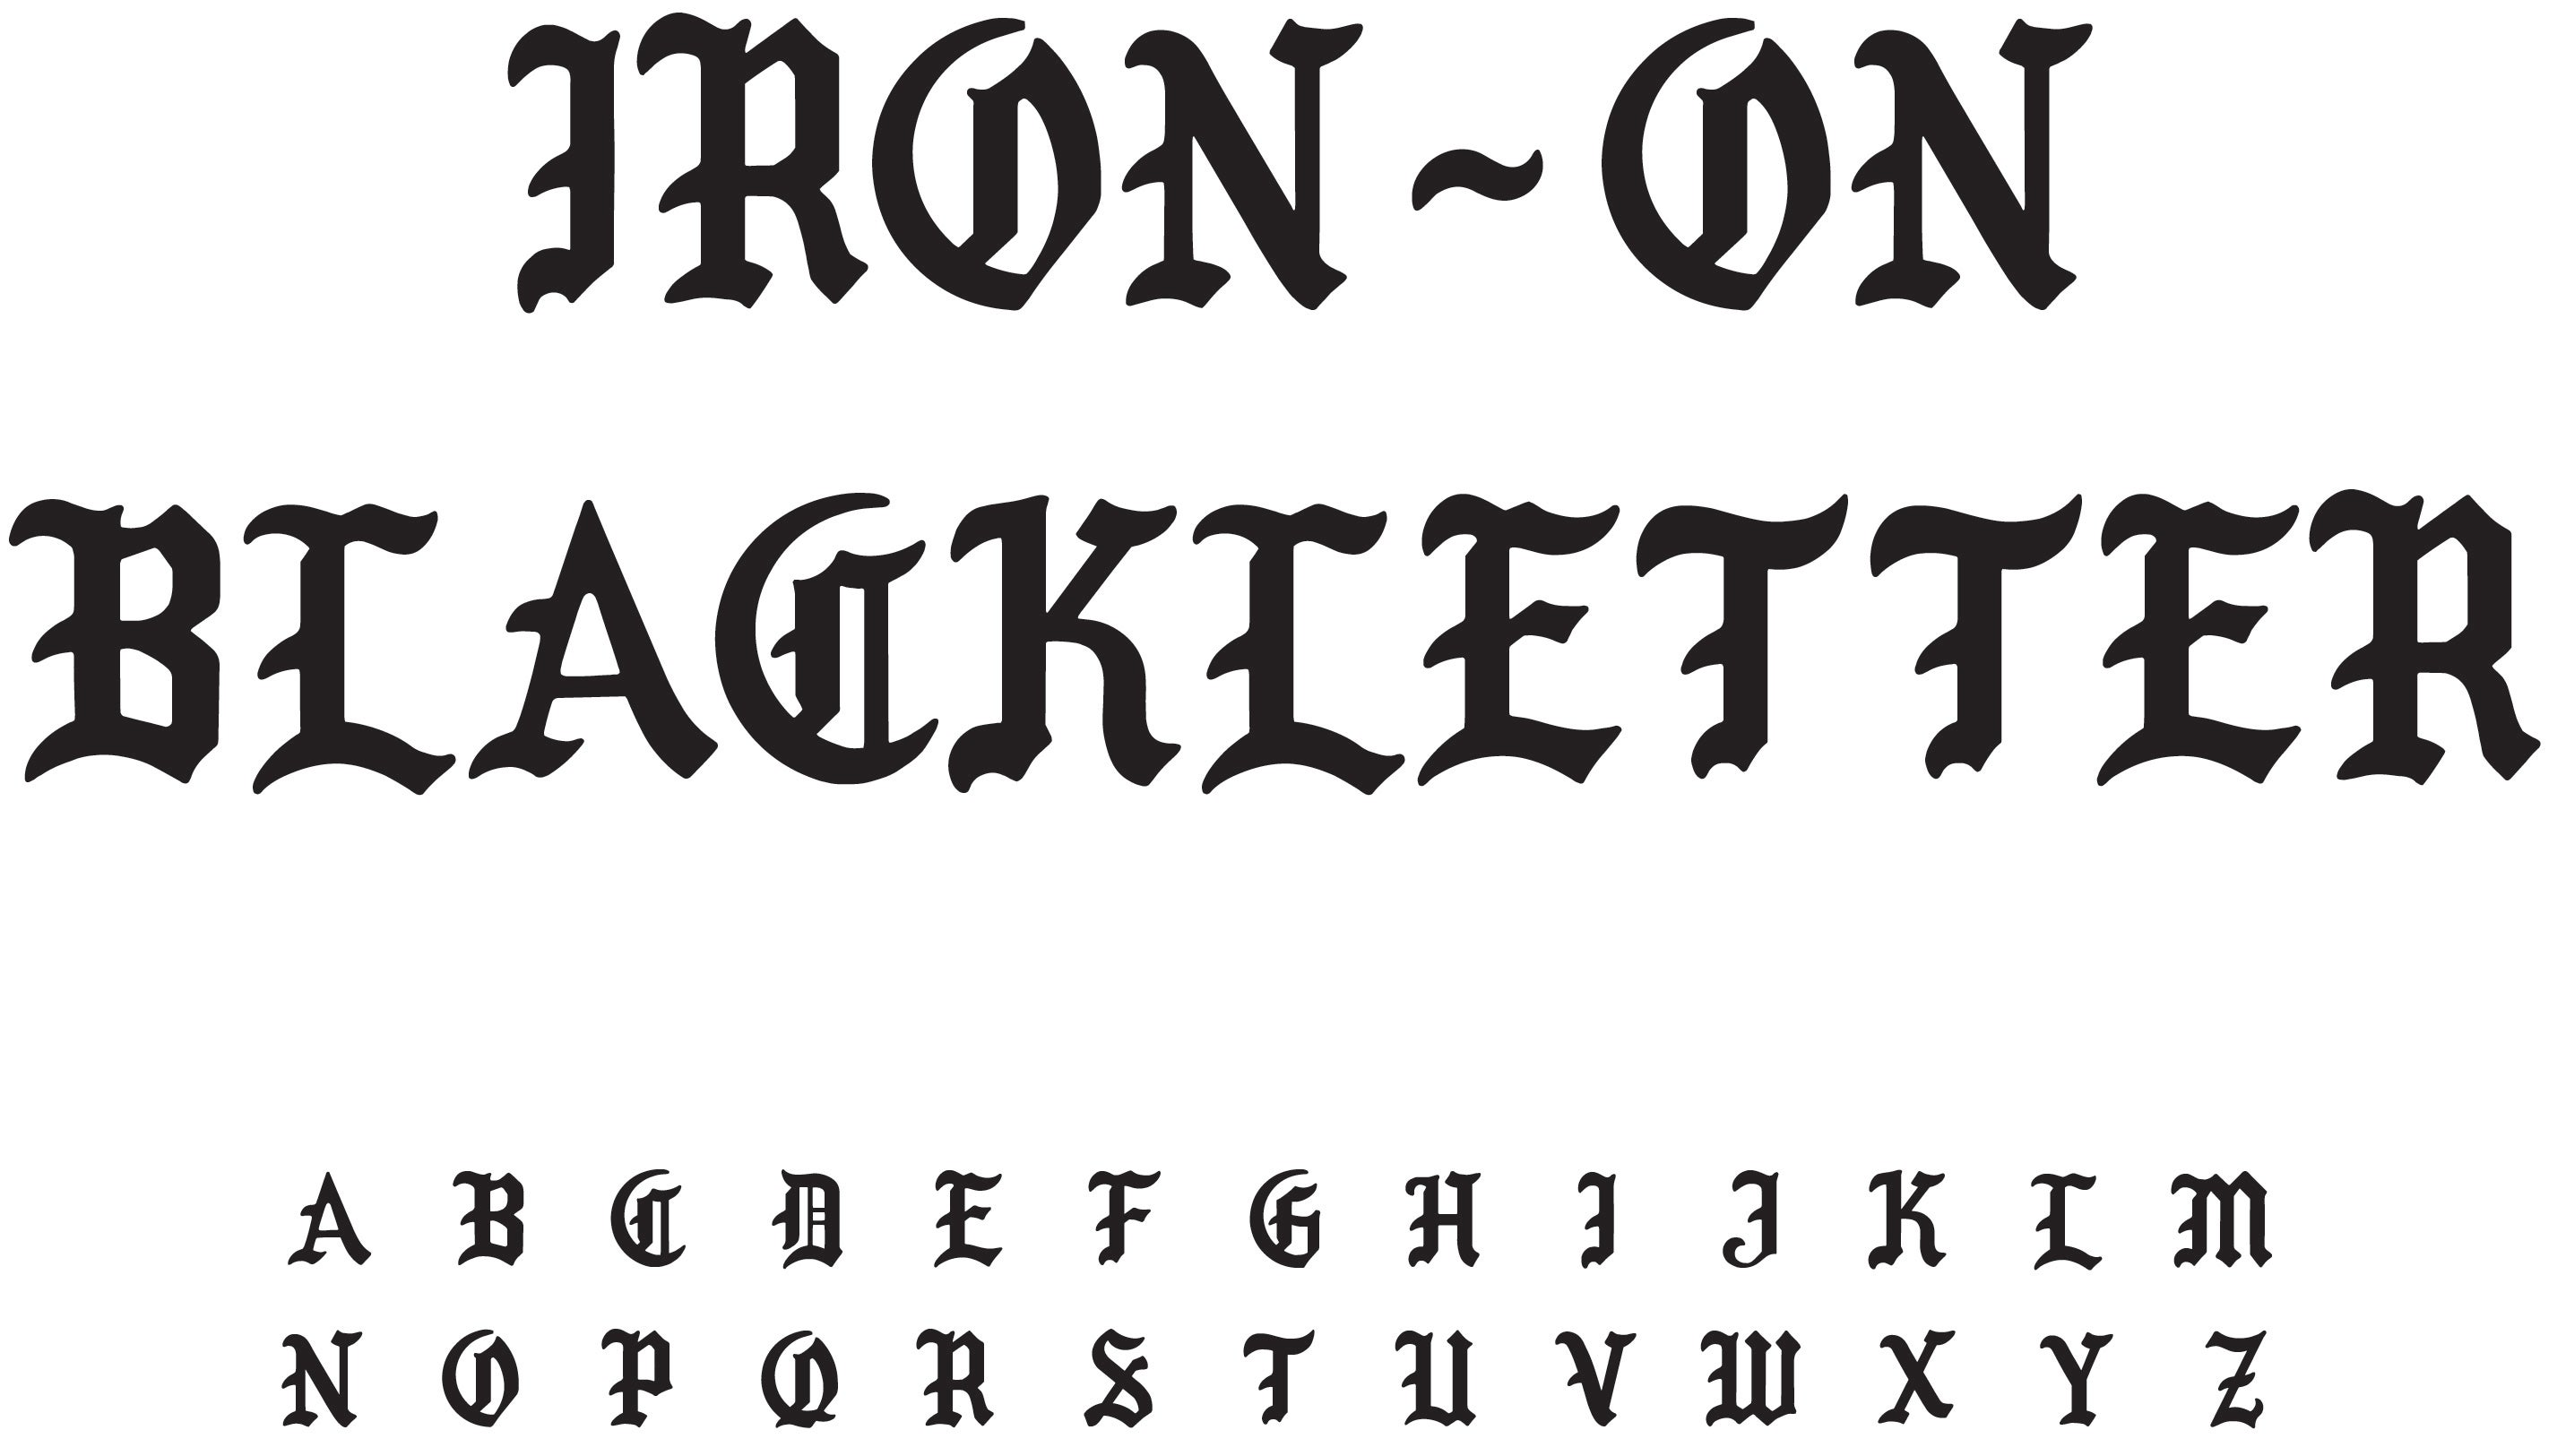 Black And White Home Wallpaper Yr Face Iron On Blackletter